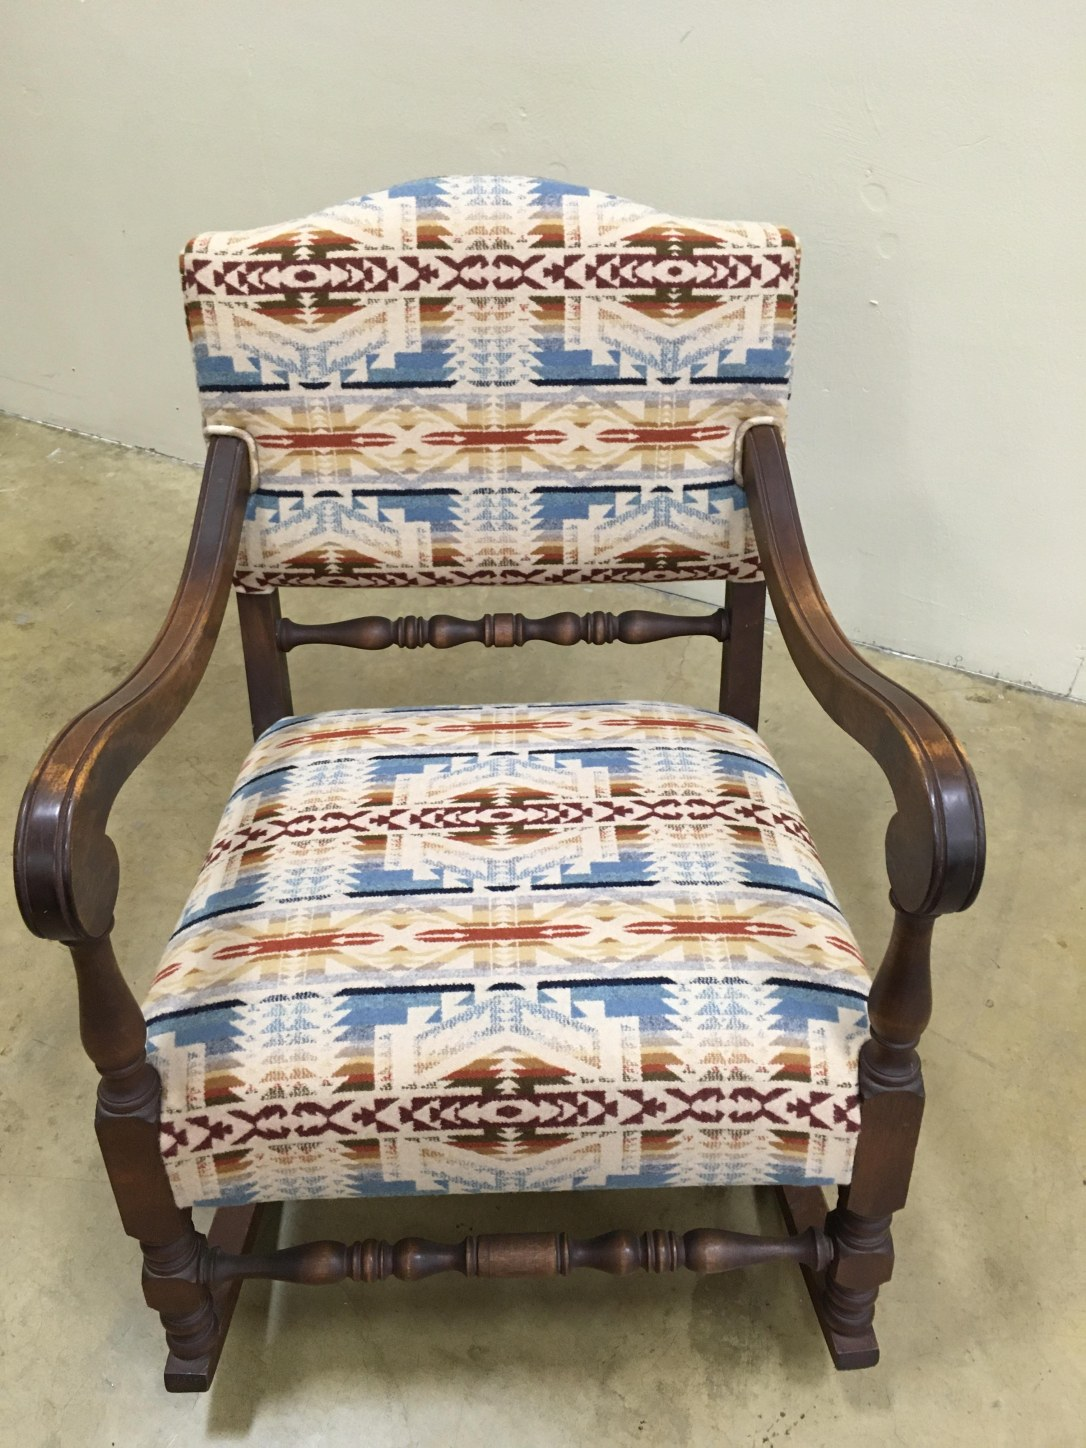 Heirloom rocker with new upholstery